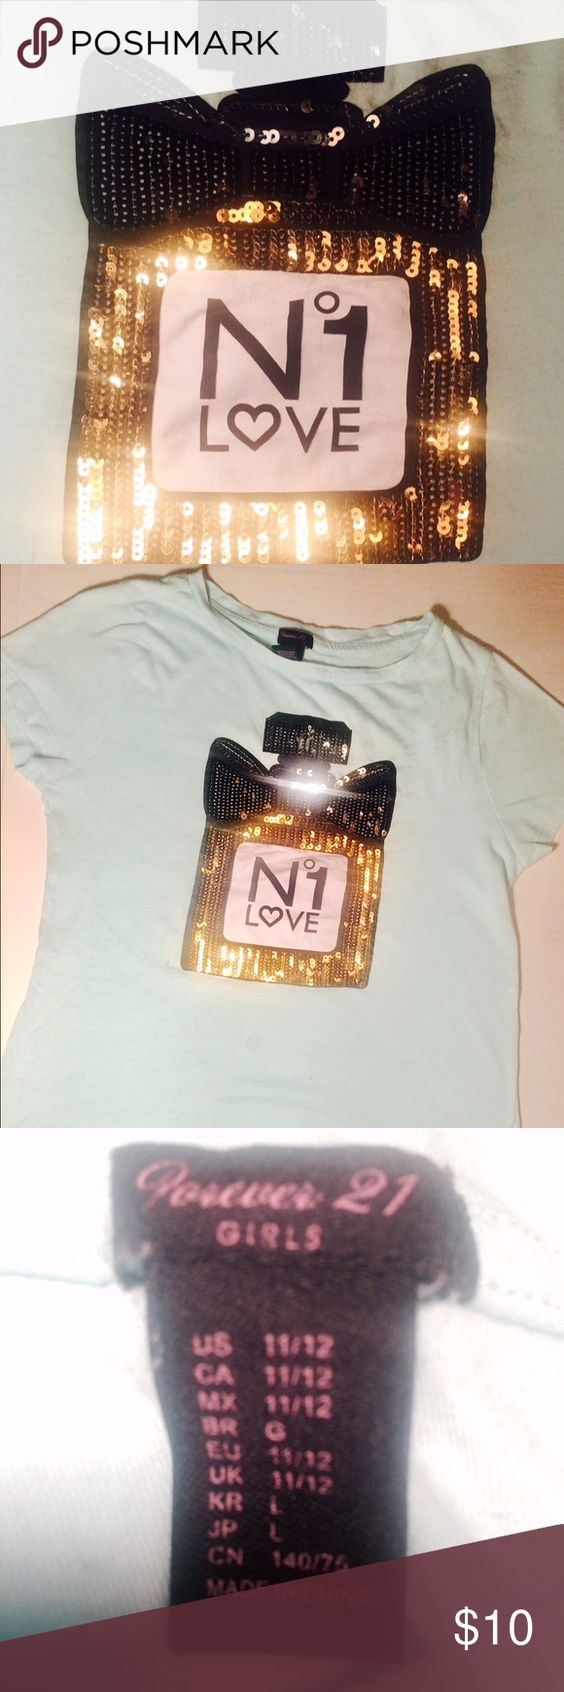 Fun sparkling T This shirt is so adorable and perfect for any tween. I'm great condition Forever 21 Shirts & Tops Tees - Short Sleeve